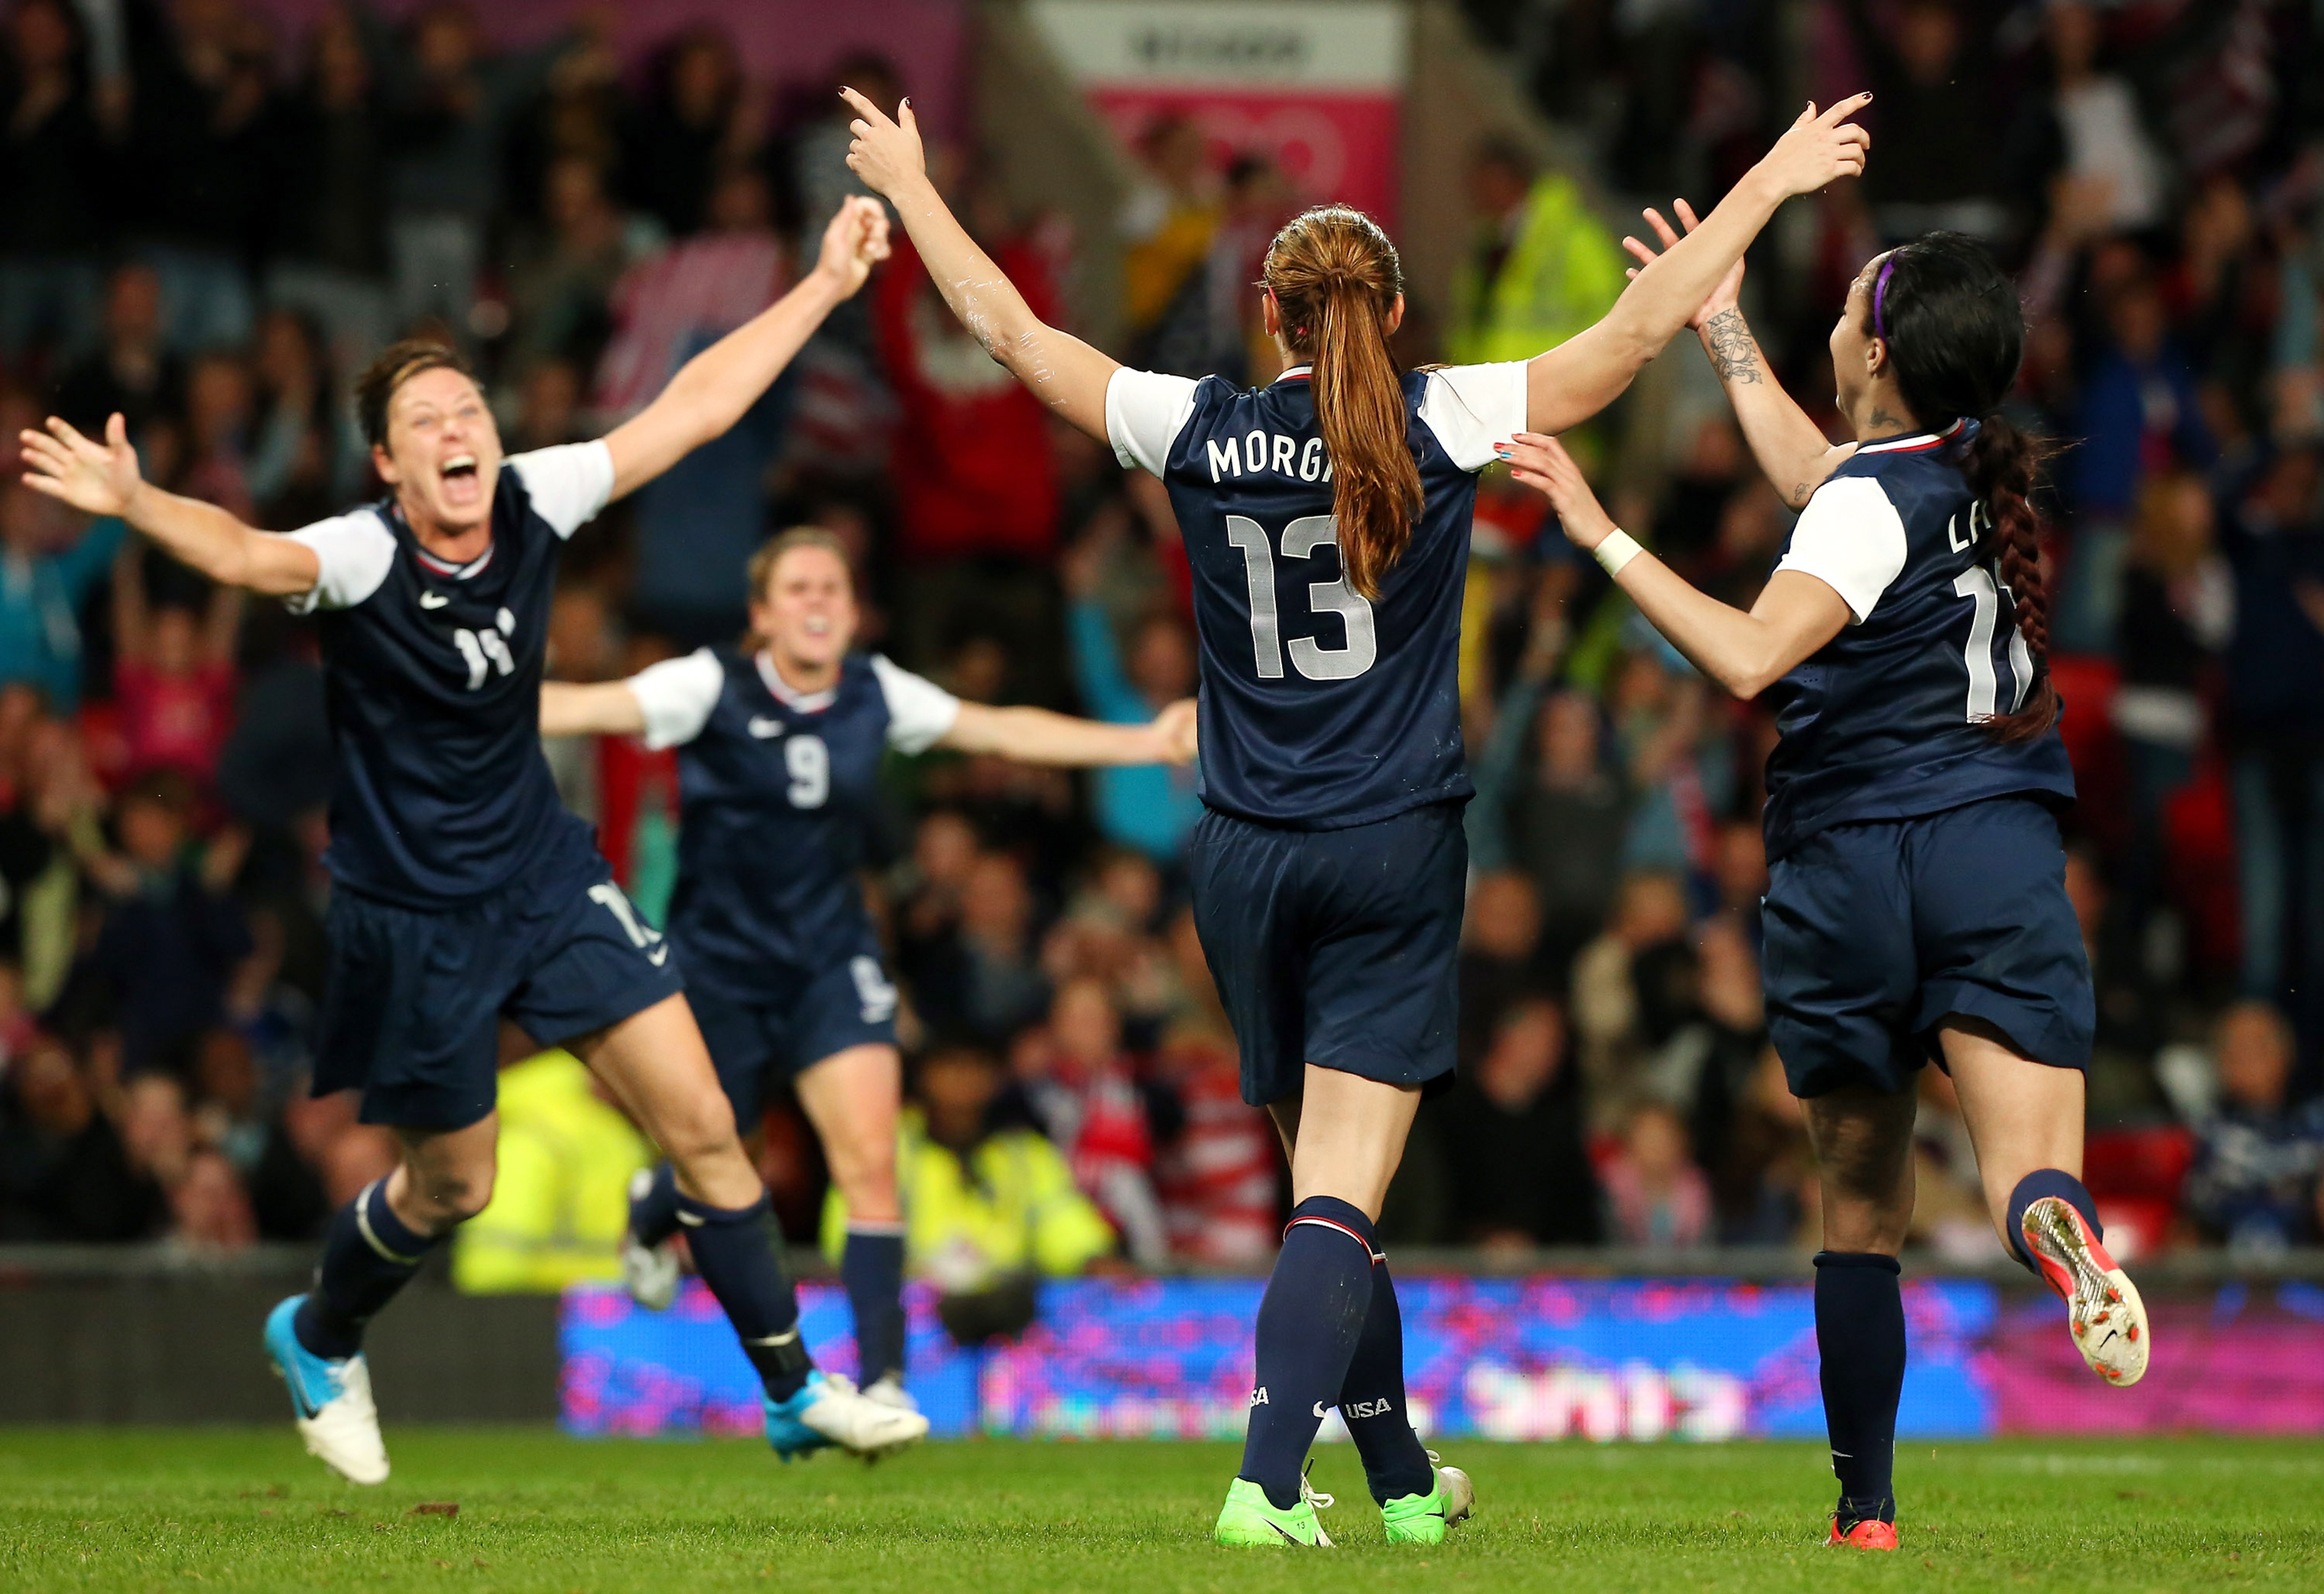 Morgan celebrating her legendary goal to beat Canada at the 2012 Olympics